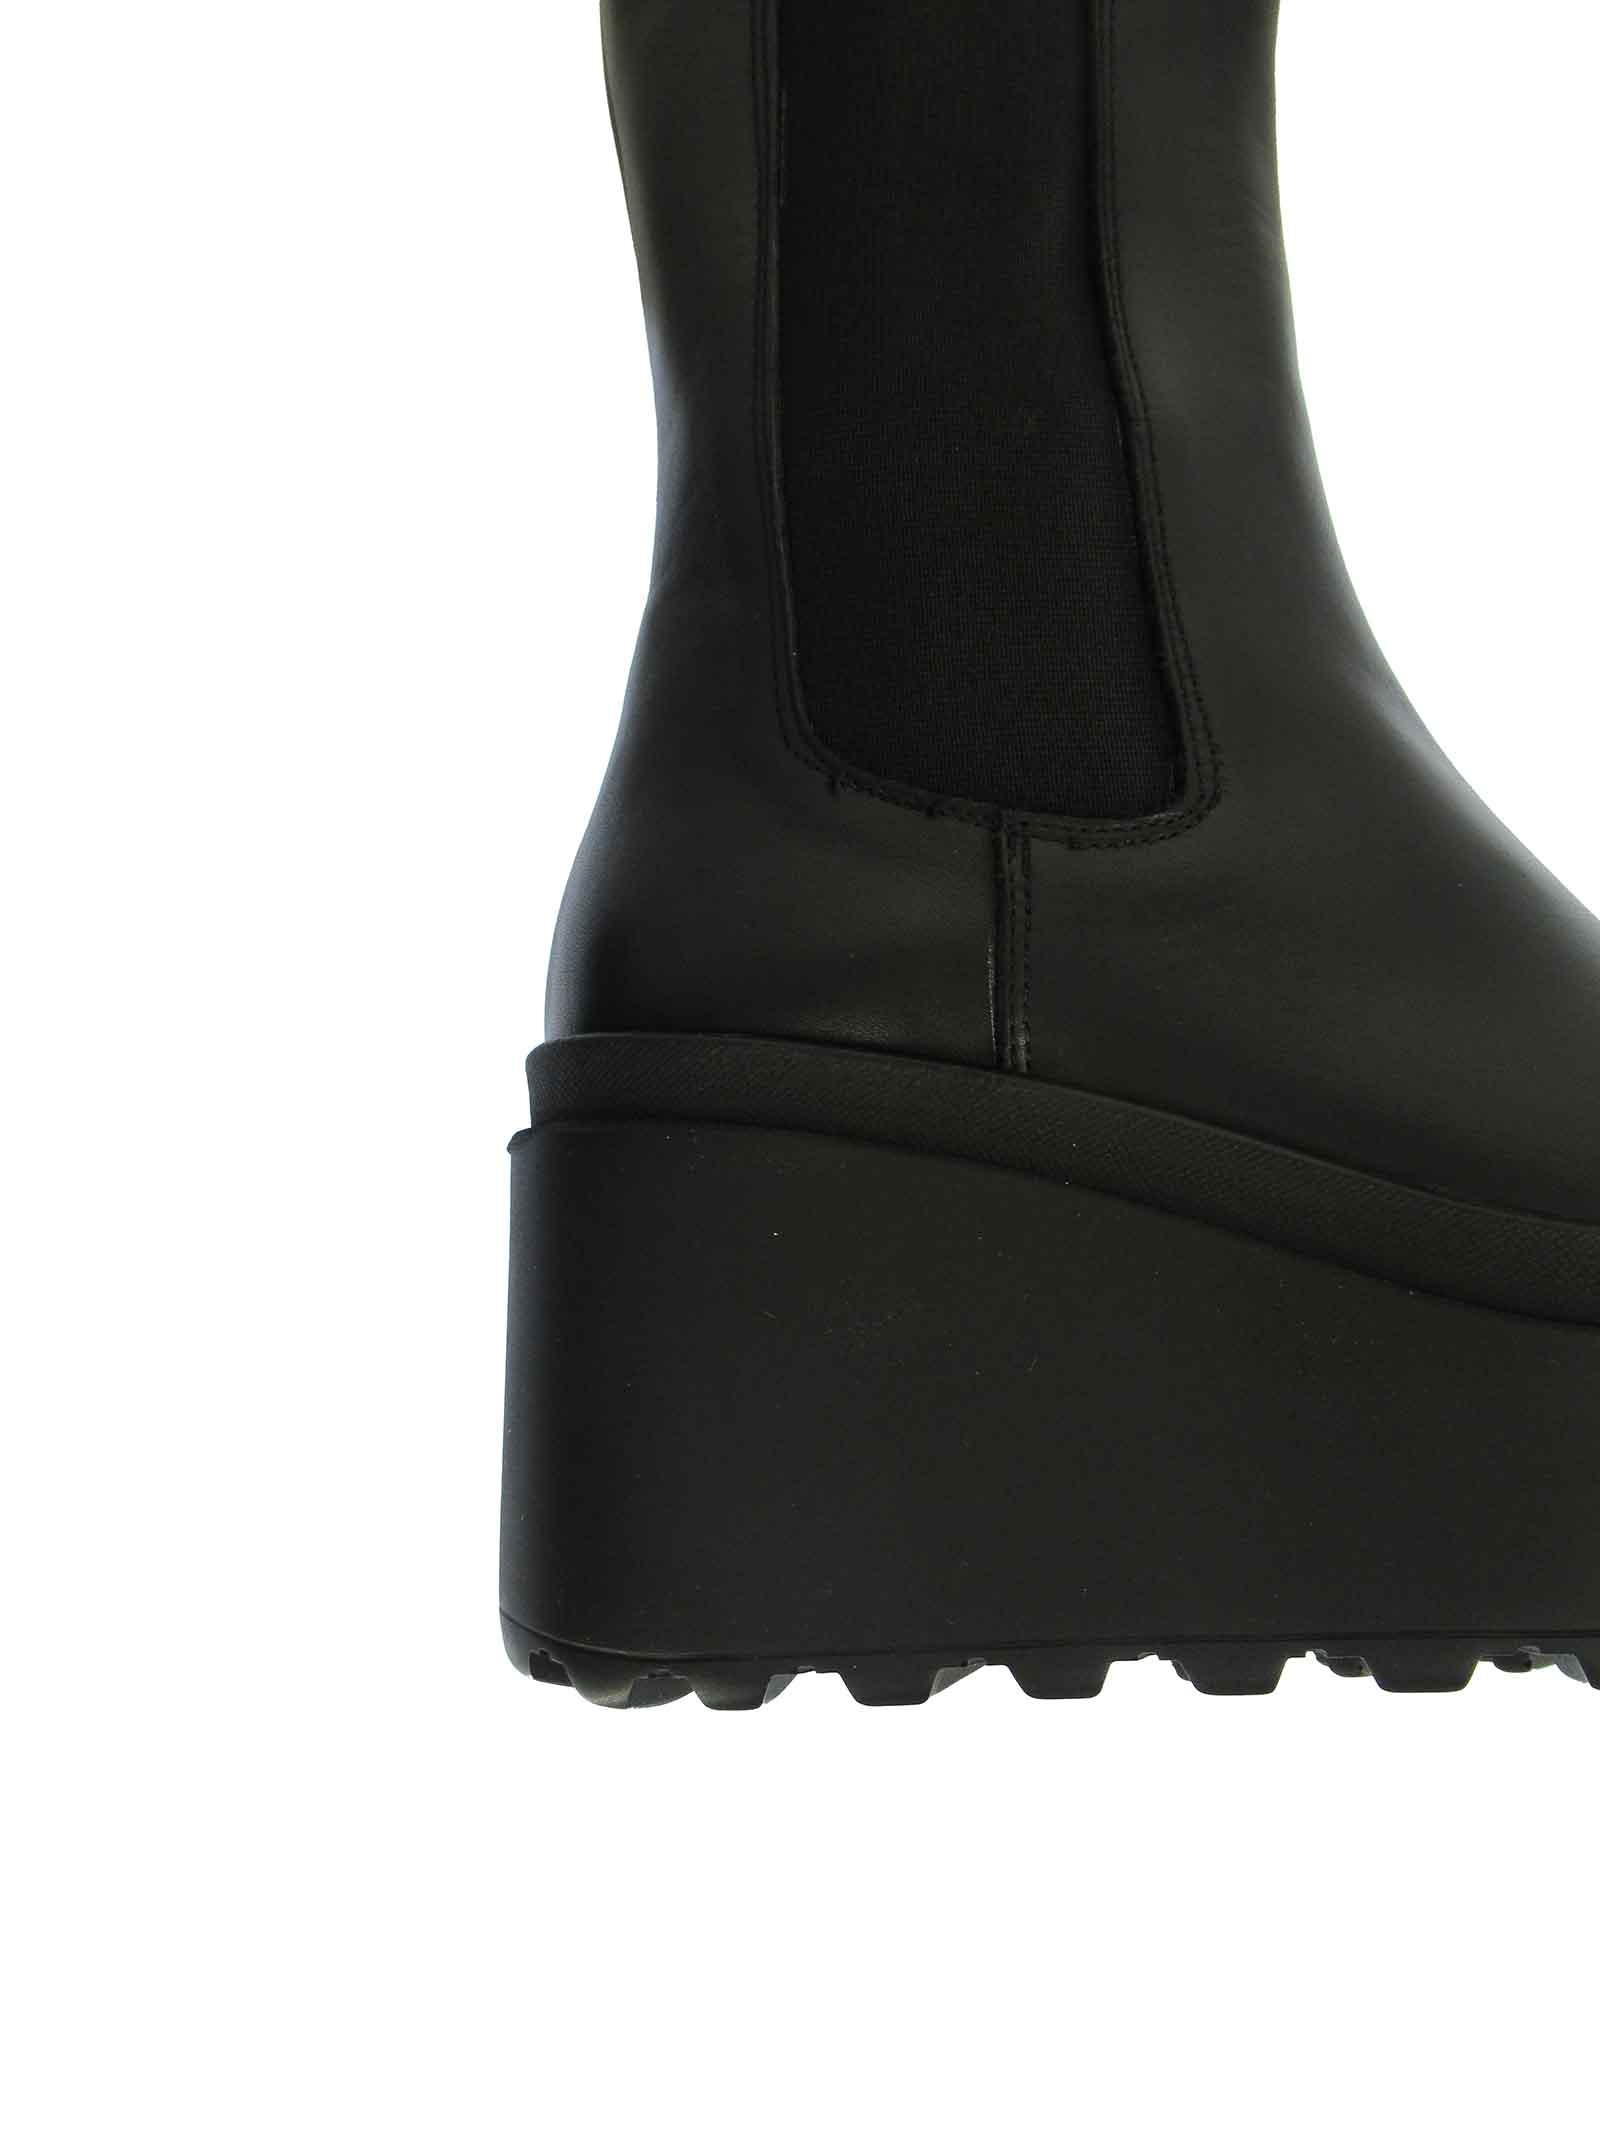 Women's Shoes Beatles in Black Leather with Matching Elastic Straps and High Wedge Sole Tattoo | Ankle Boots | JOLLY 6001